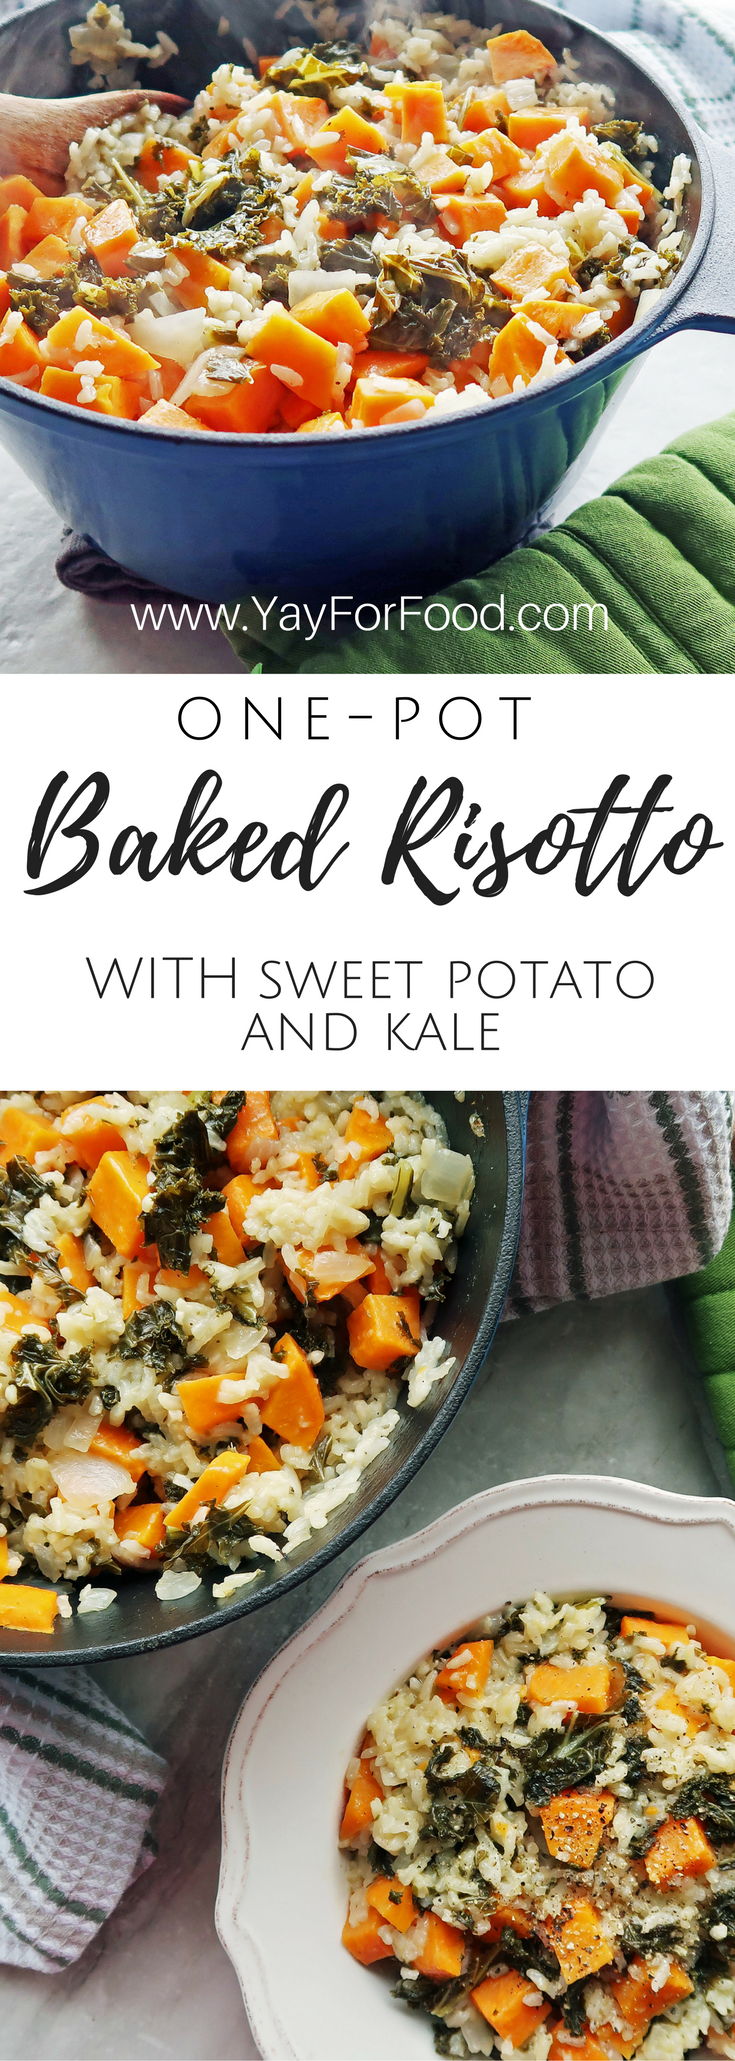 Enjoy this easy to prepare baked risotto filled with heart-healthy kale and sweet potato. A filling, oven-baked dish that's made in one-pot so cleanup is a breeze!